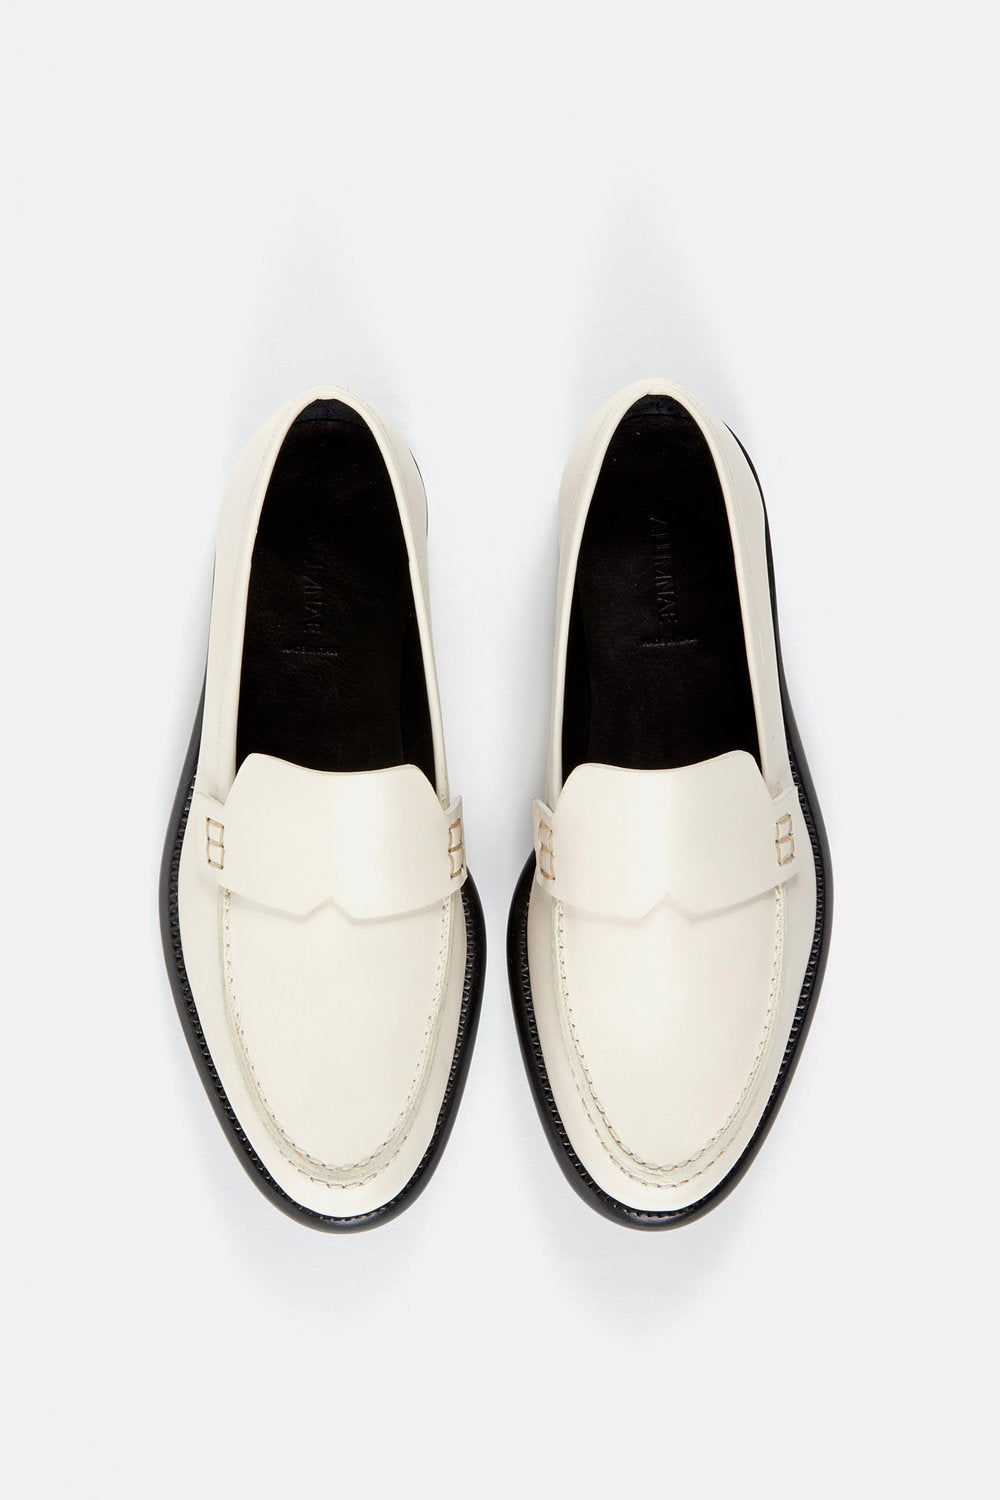 Minimalist Loafer Off White Calf.